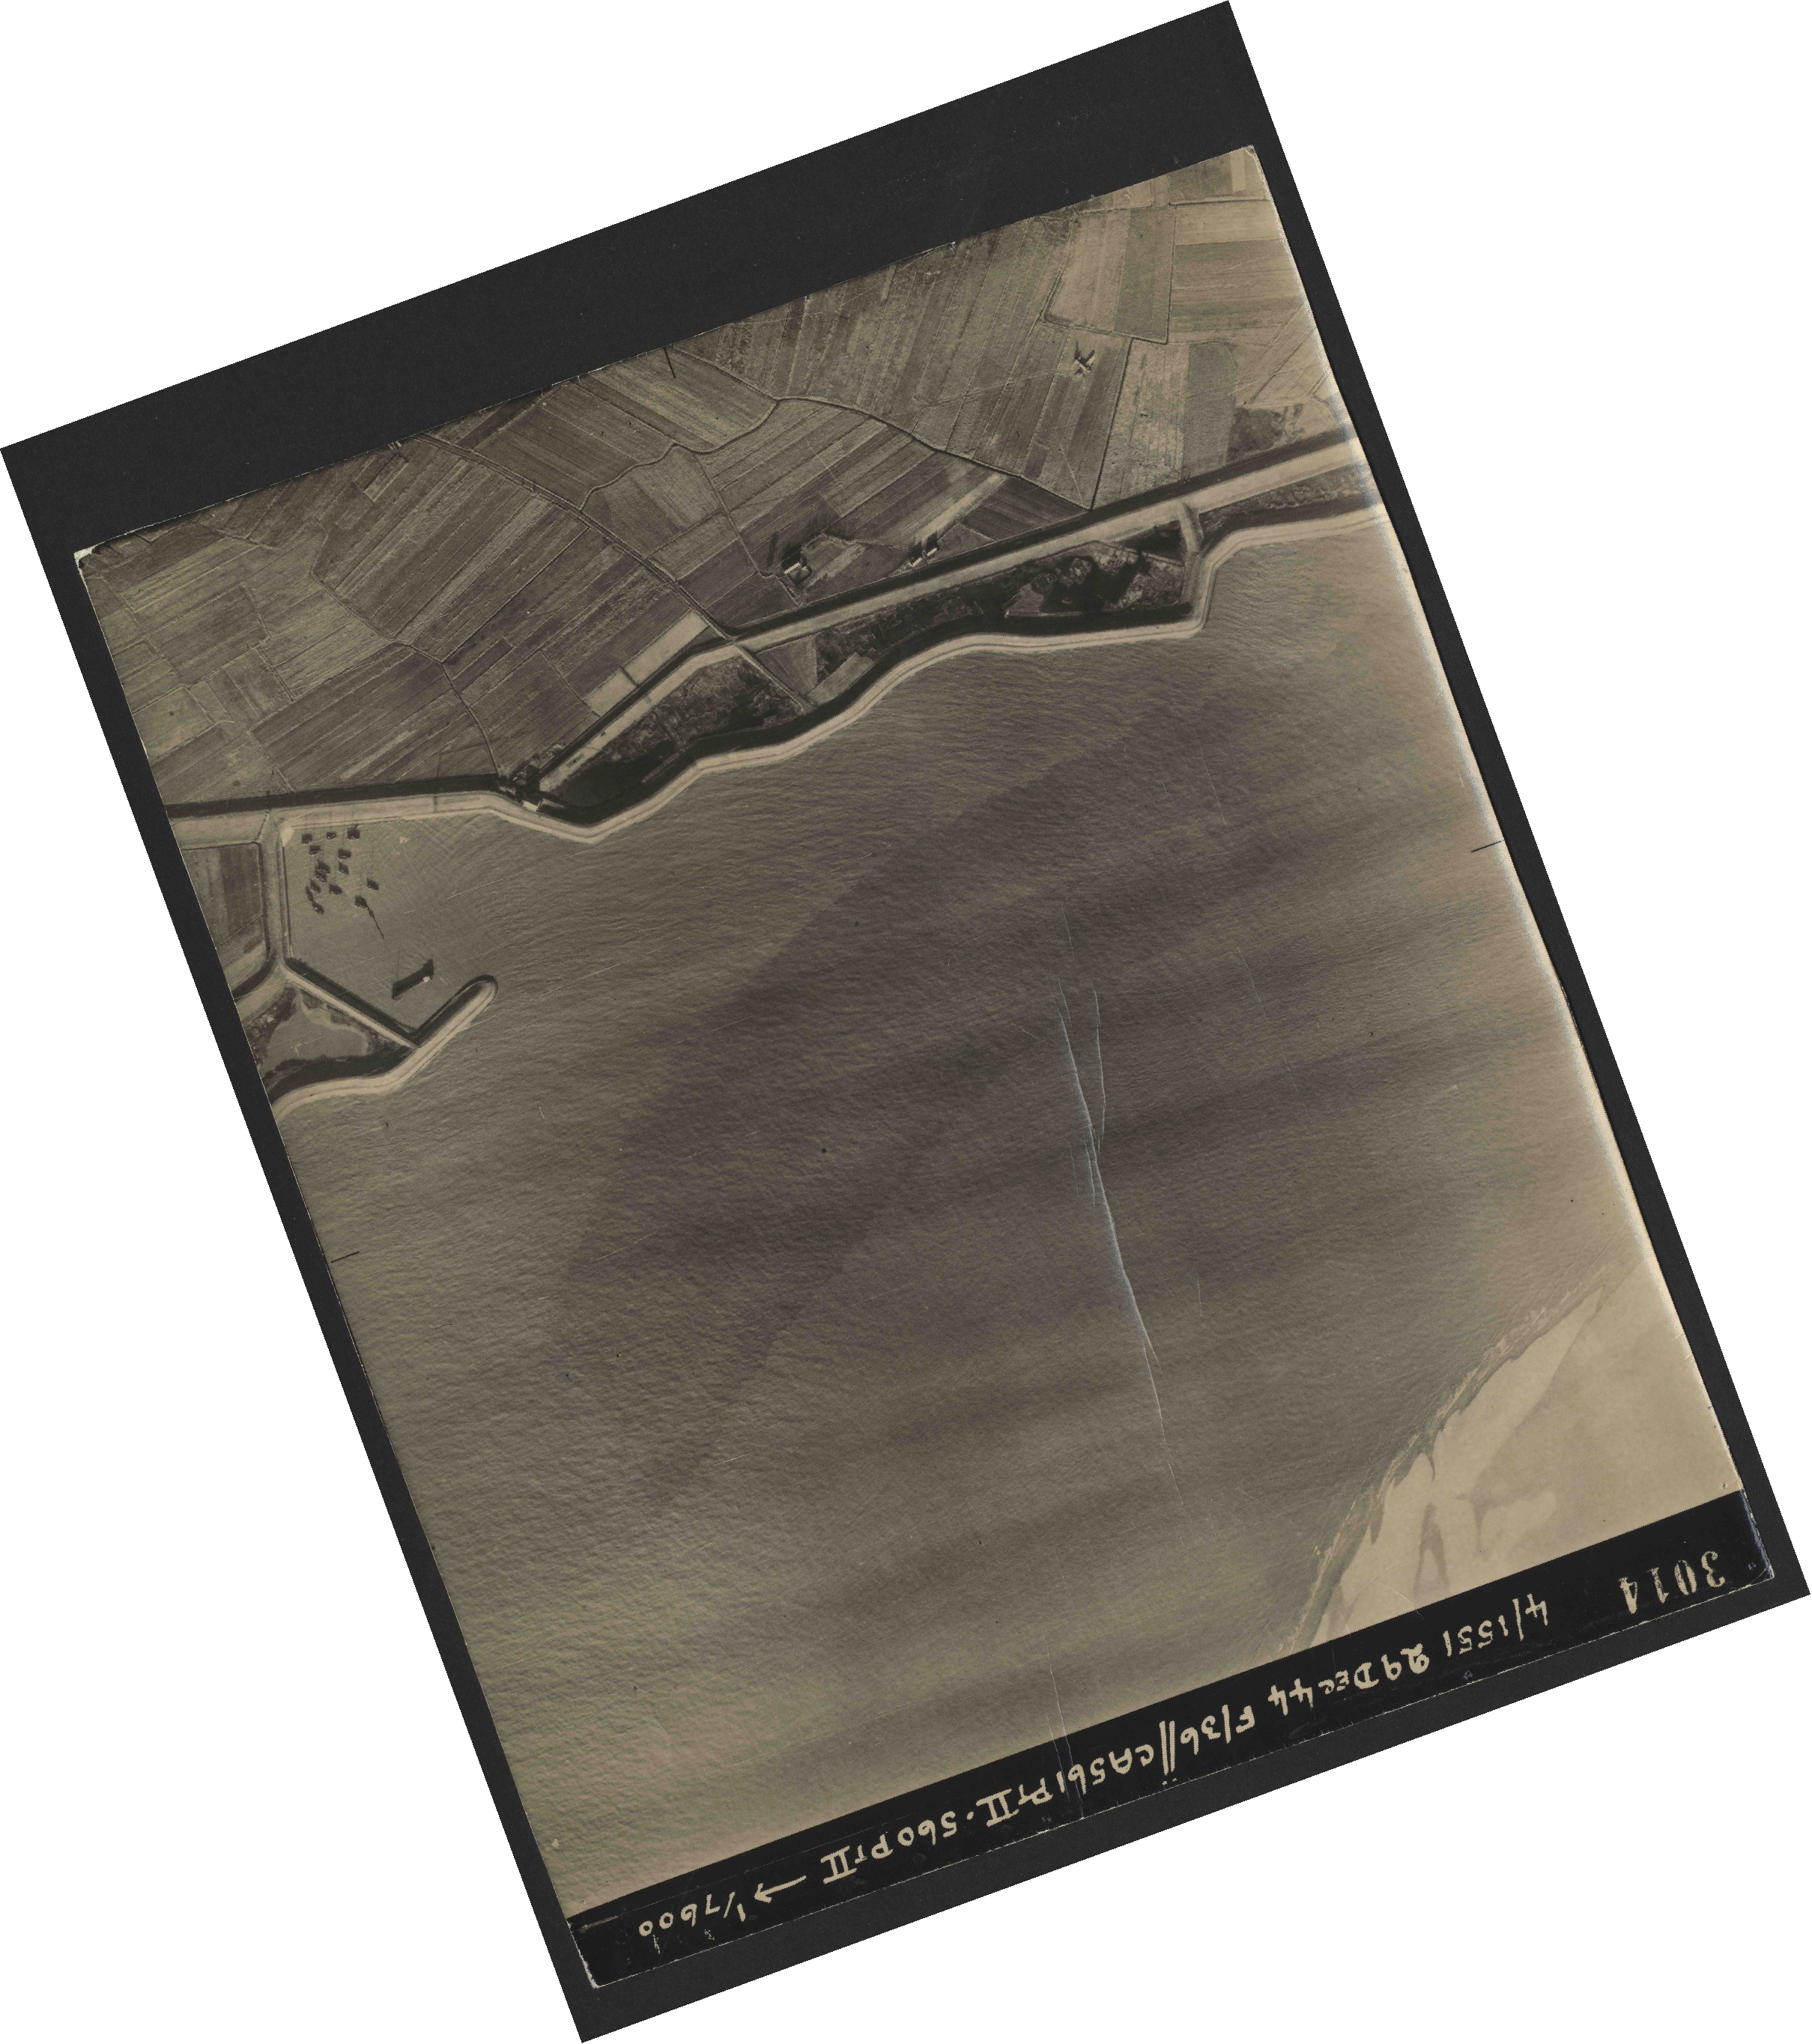 Collection RAF aerial photos 1940-1945 - flight 092, run 04, photo 3014